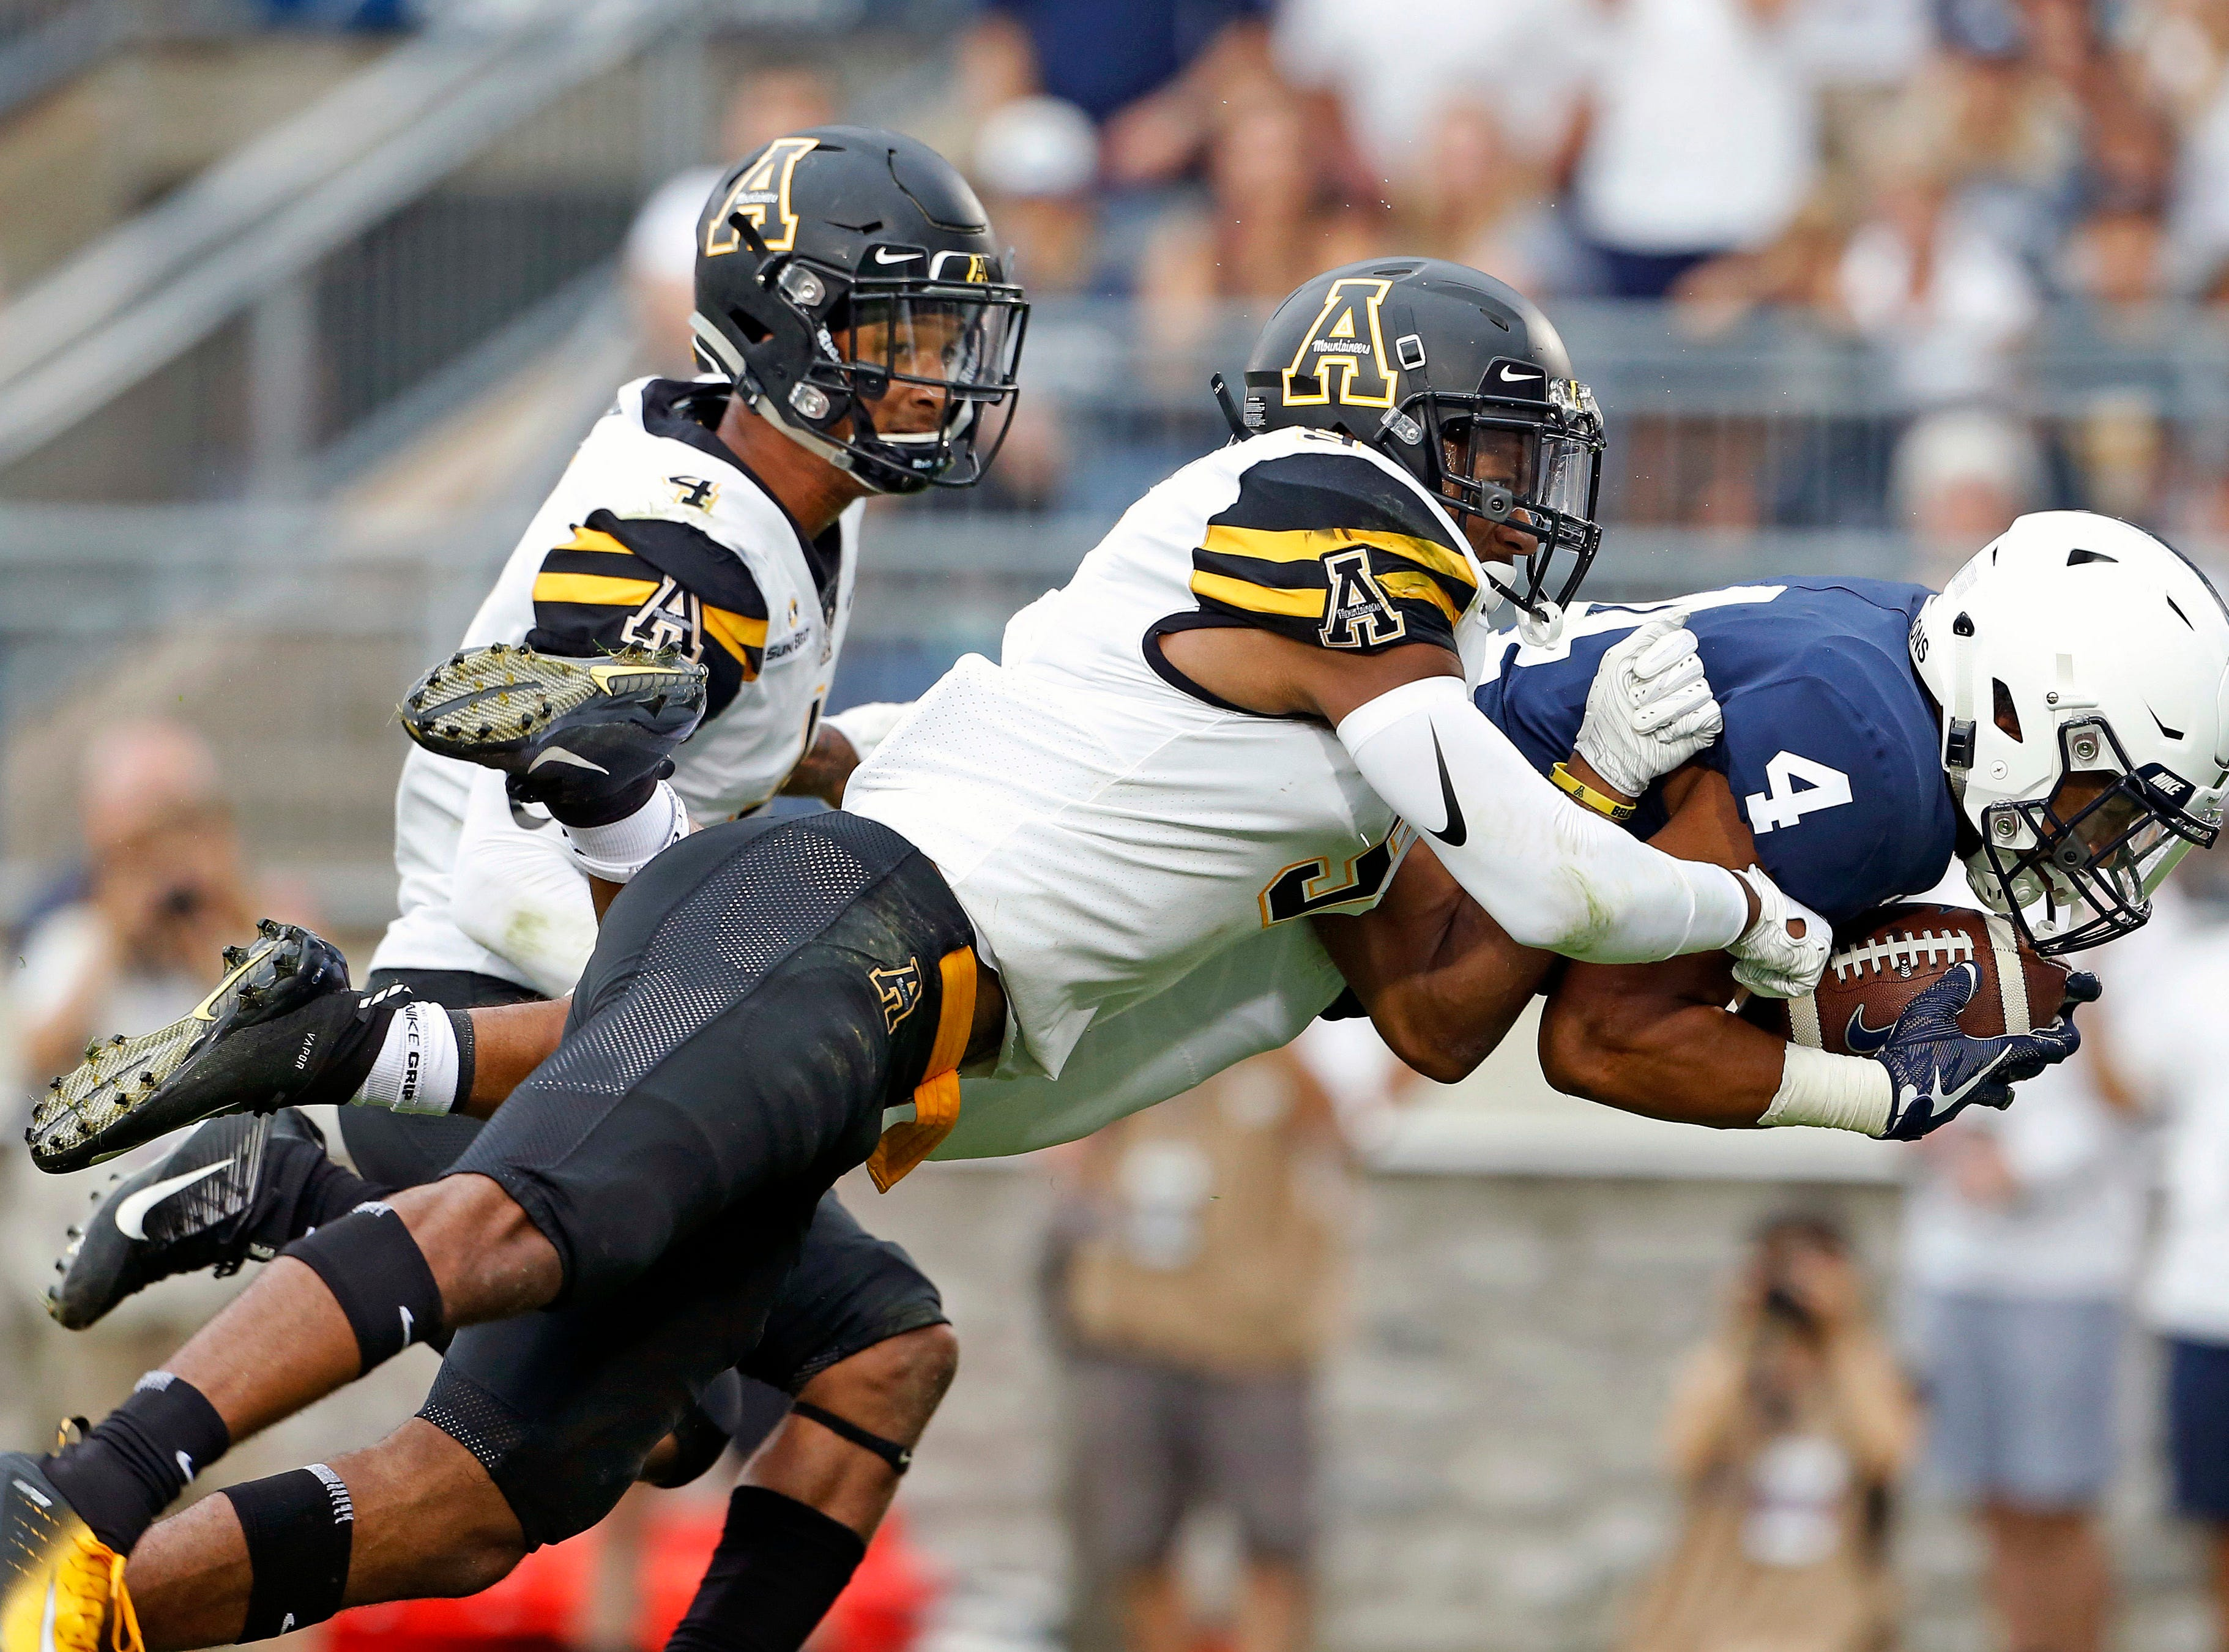 Penn State's Ricky Slade (4) dives in for a touchdown as Appalachian State's Austin Exford (9) and Clifton Duck (4) try and to make the tackle during the second half of an NCAA college football game in State College, Pa., Saturday, Sept. 1, 2018. Penn State won 45-38 in overtime. (AP Photo/Chris Knight)